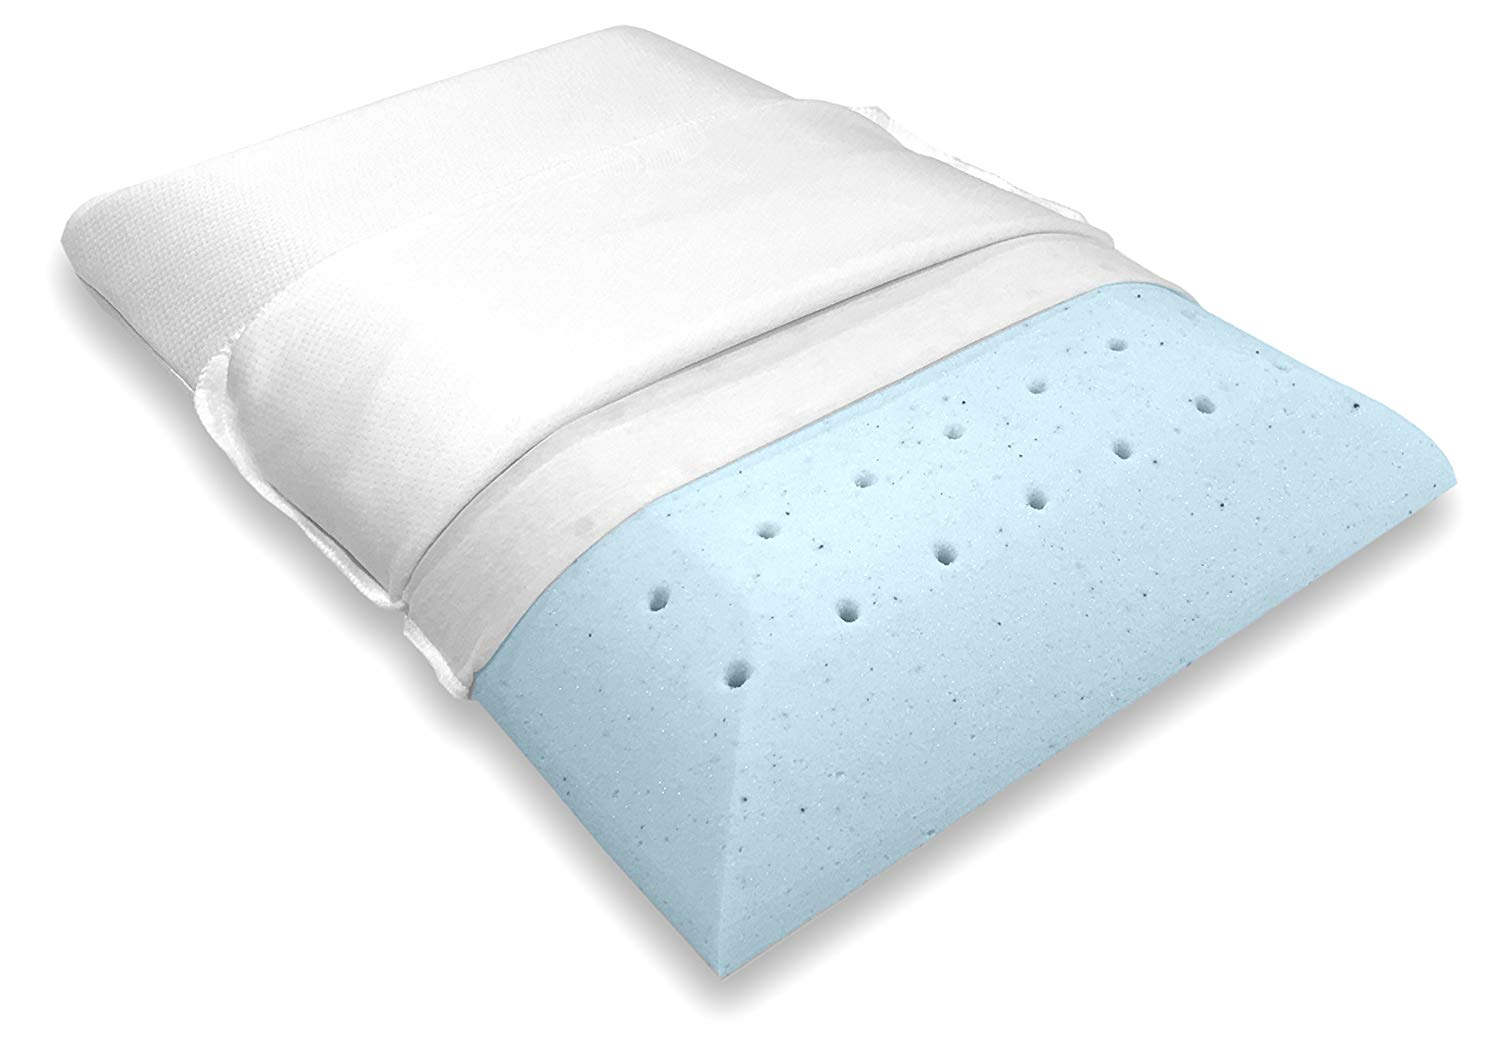 Bluewave Best Cooling Pillow Review By www.snoremagazine.com